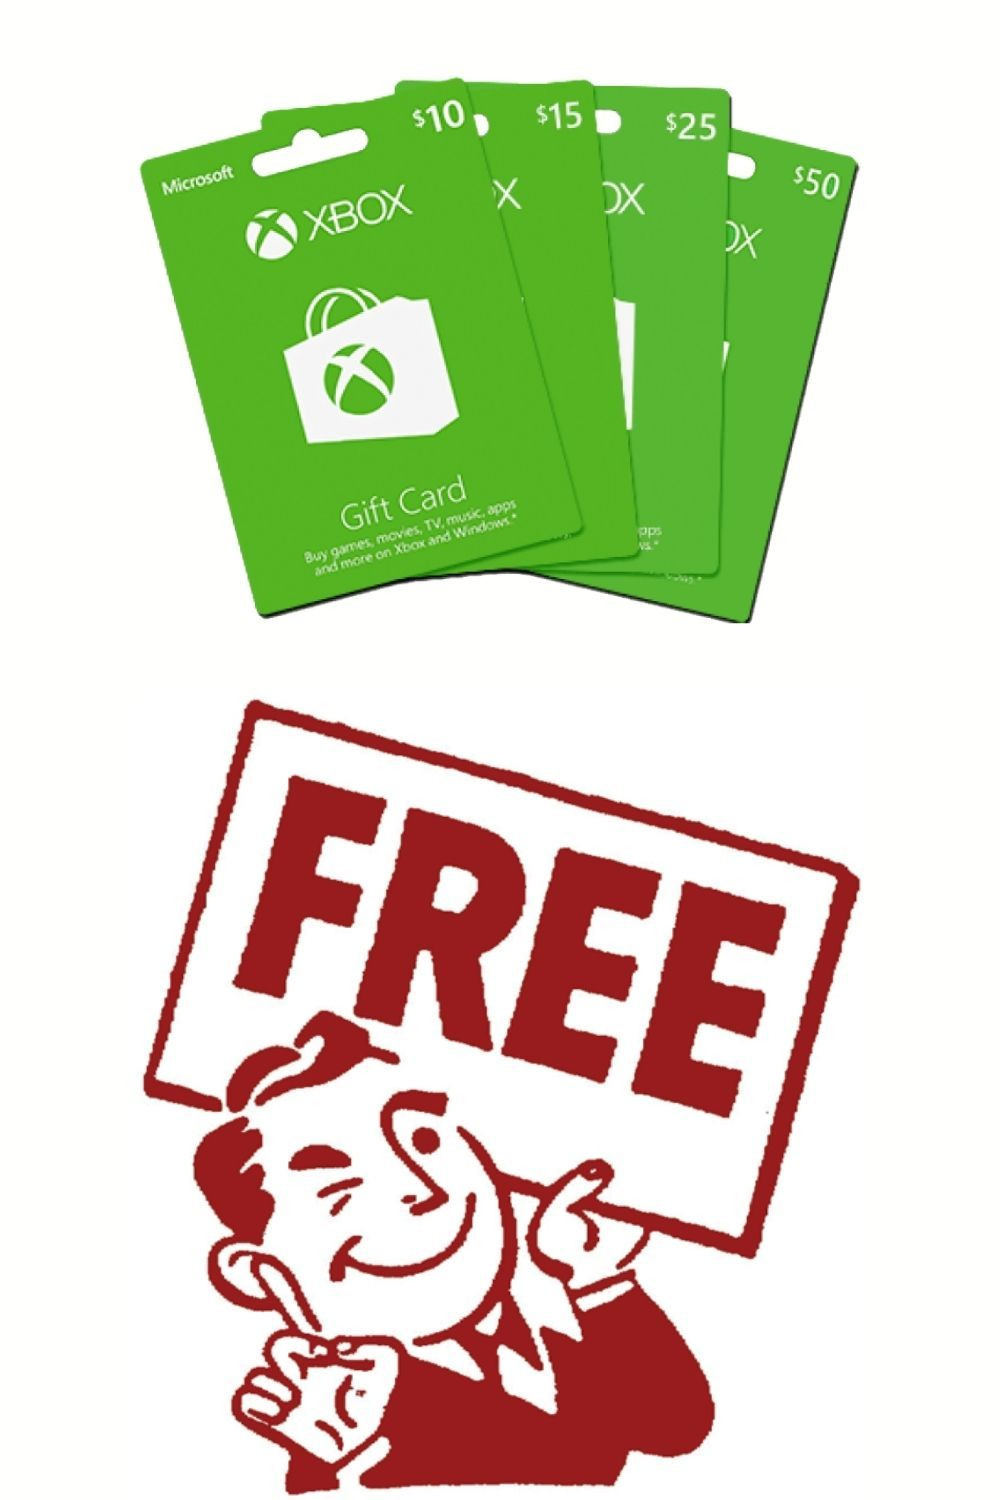 Free xbox gift card in 2021 xbox gift card get gift